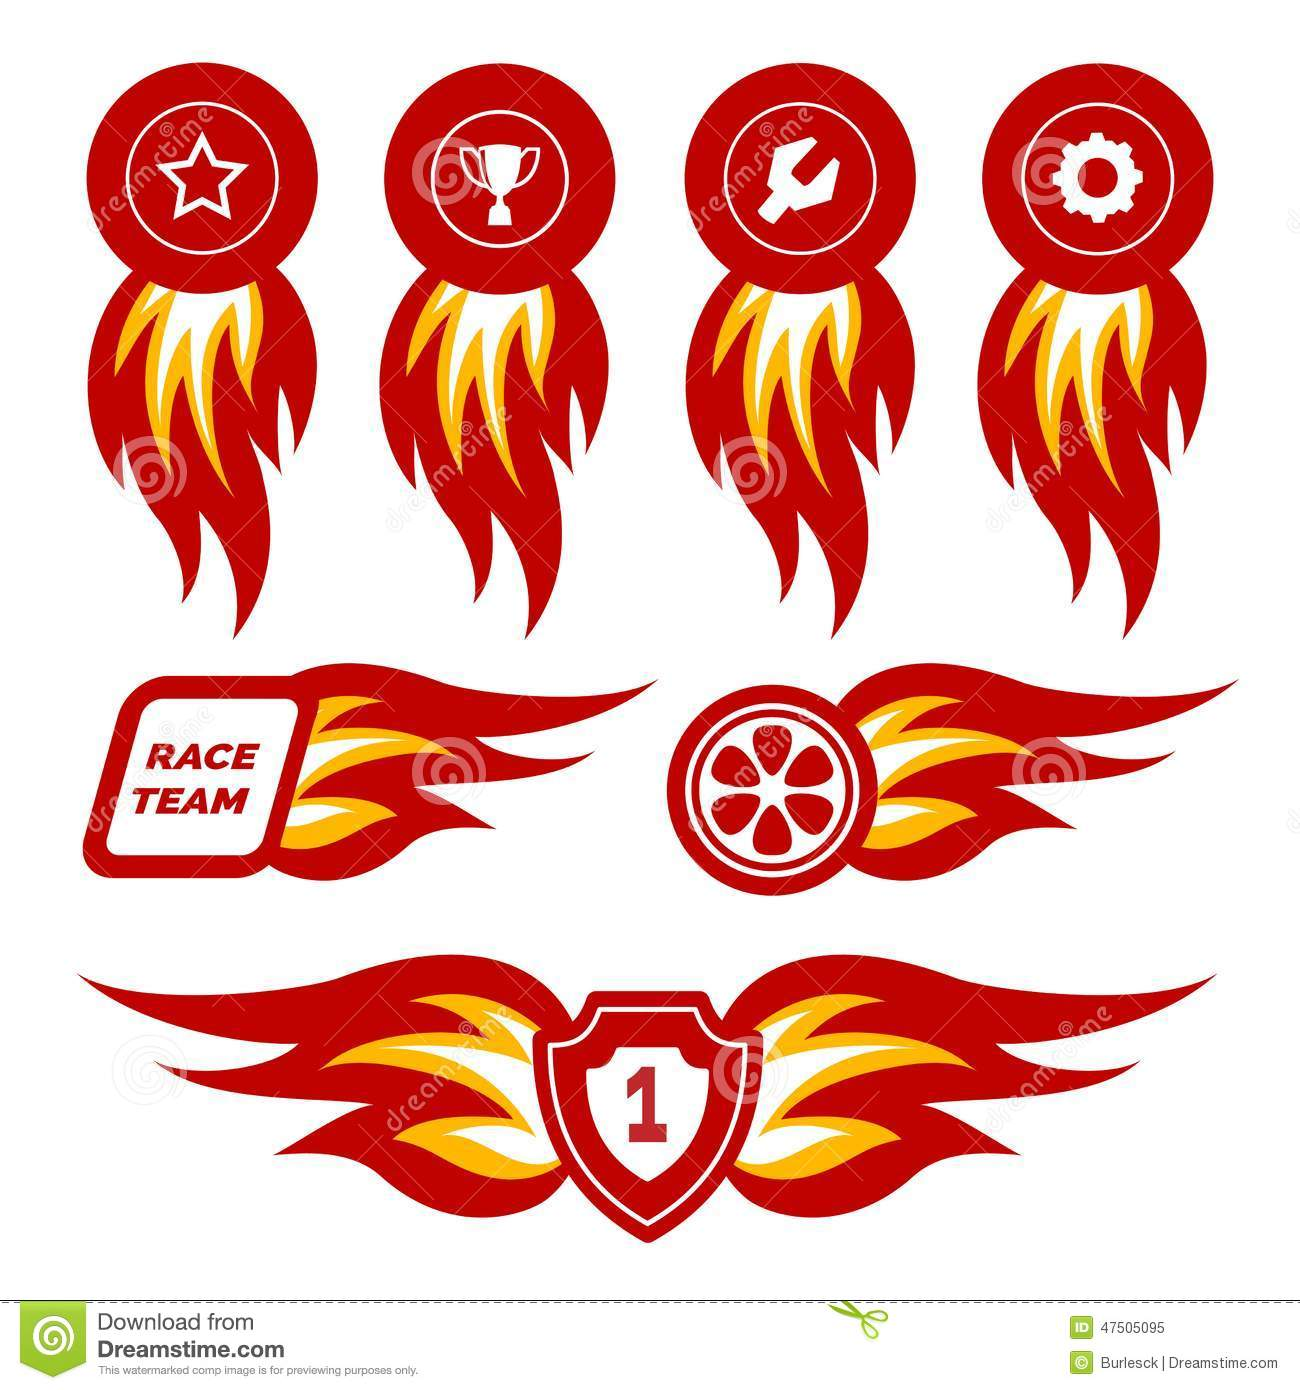 Car sticker design vector free - Flame Emblems Royalty Free Stock Photo